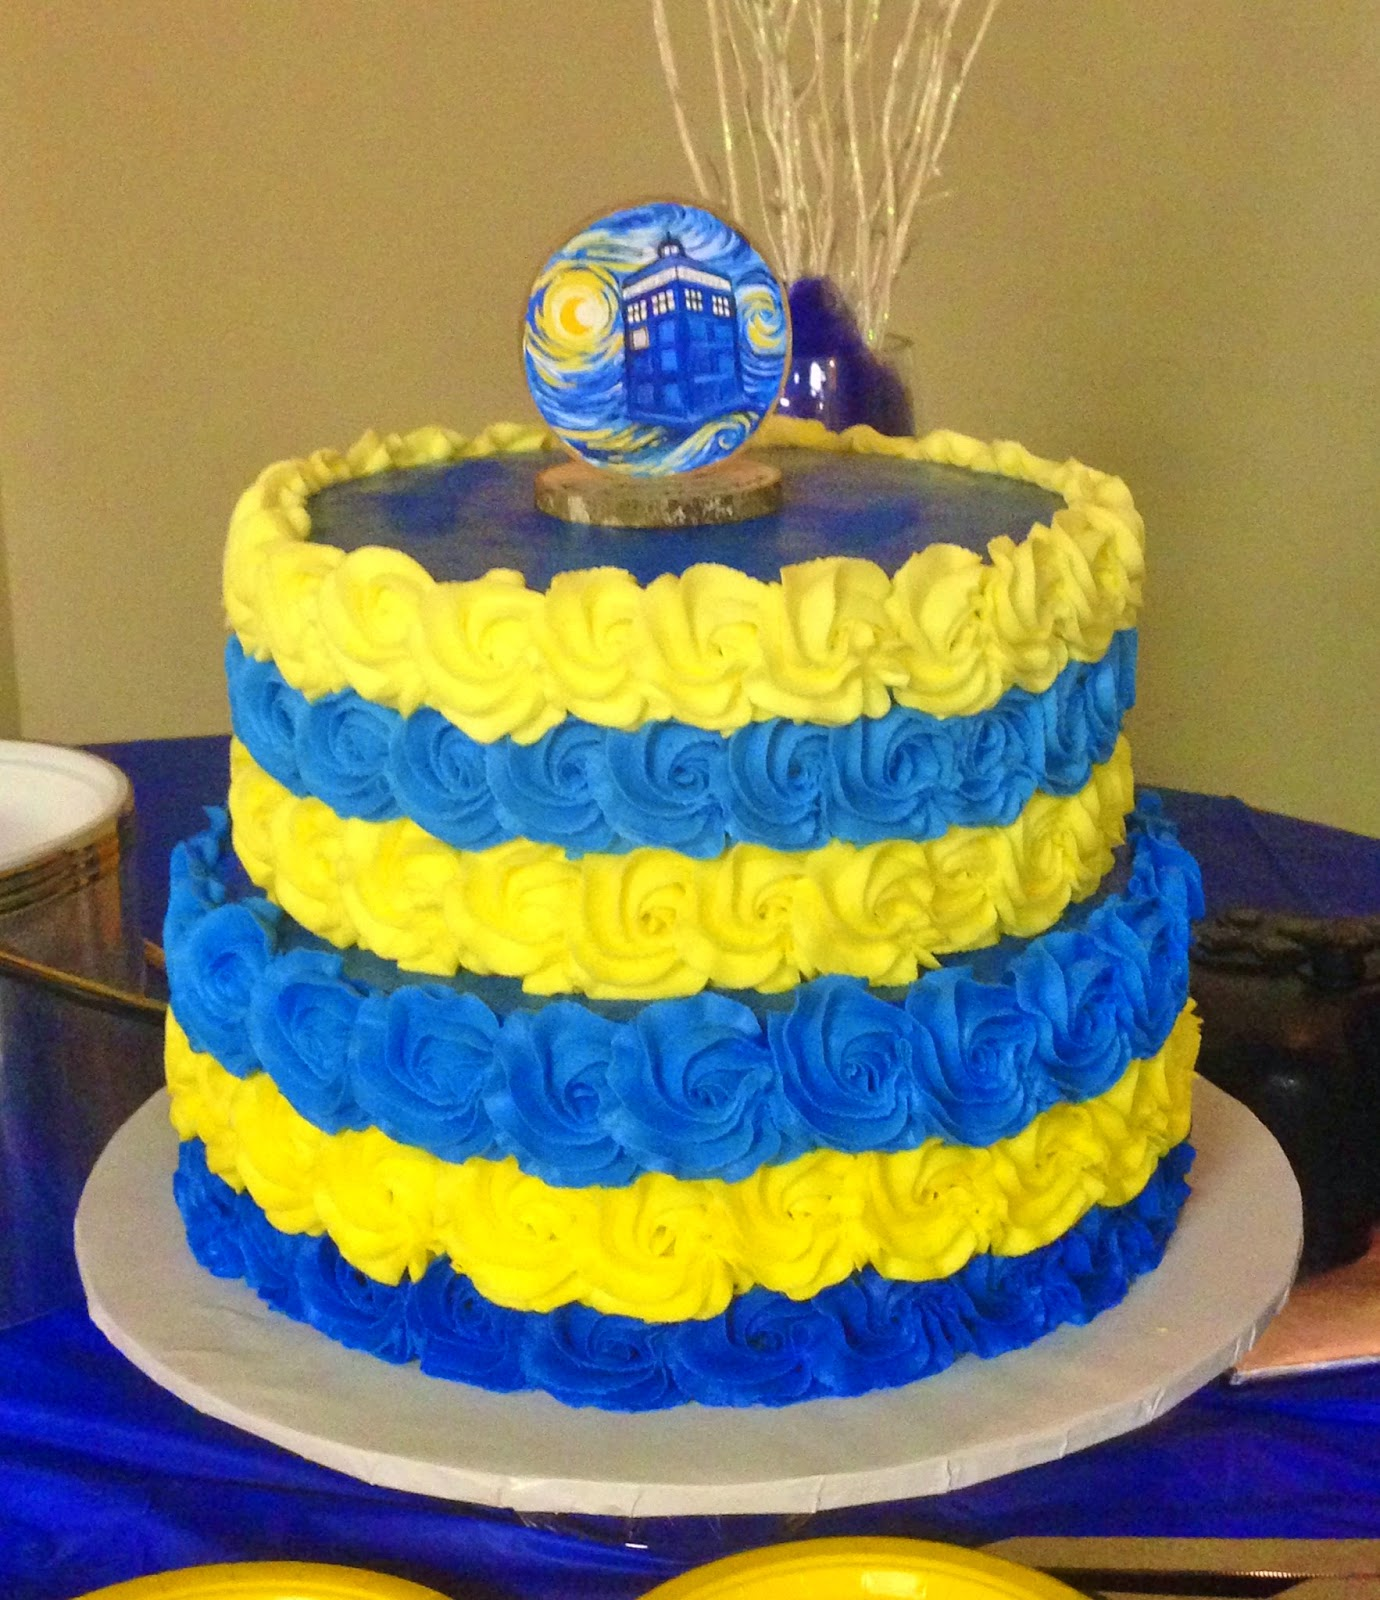 blue and yellow wedding cake ideas cakes by blue and yellow rosette wedding cake 10 quot amp 12 quot 11969